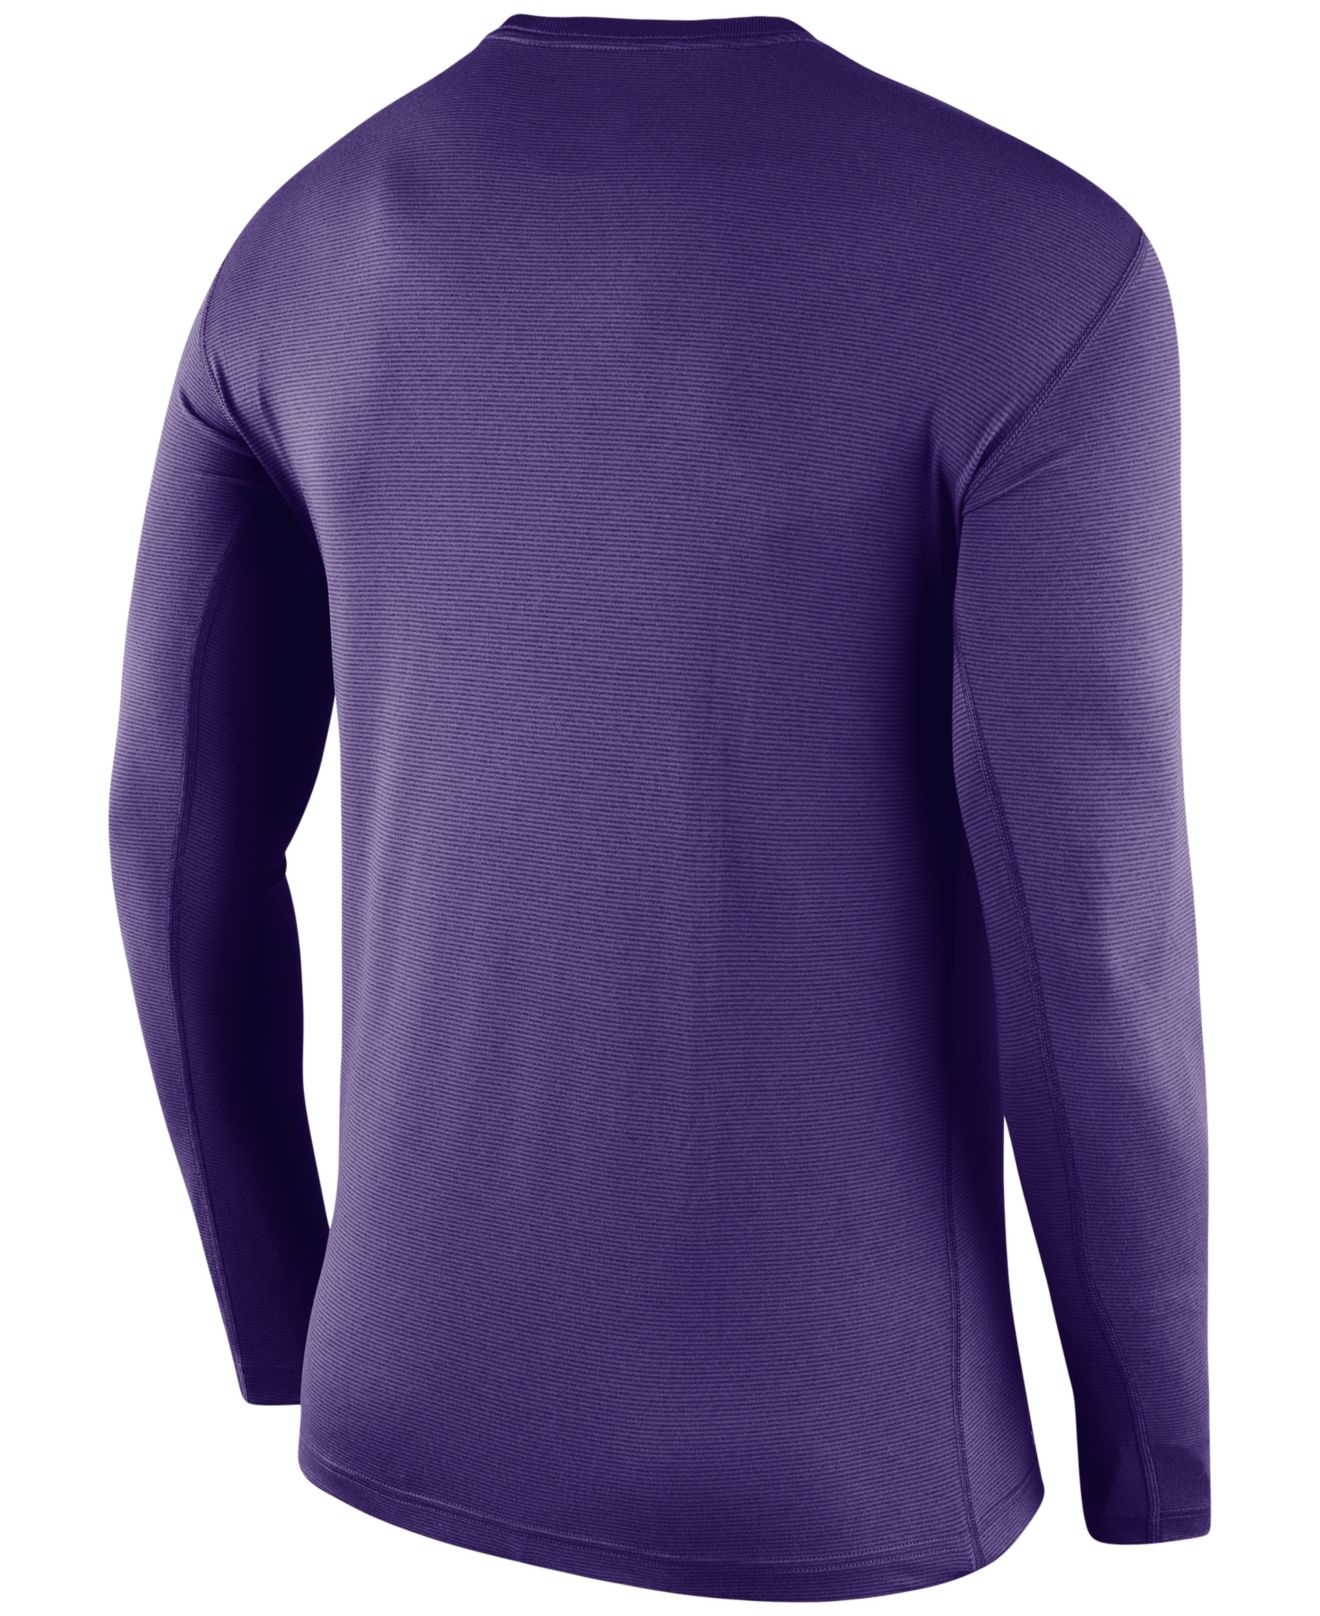 Nike Men's Long-sleeve Minnesota Vikings Dri-fit Touch T-shirt in ...